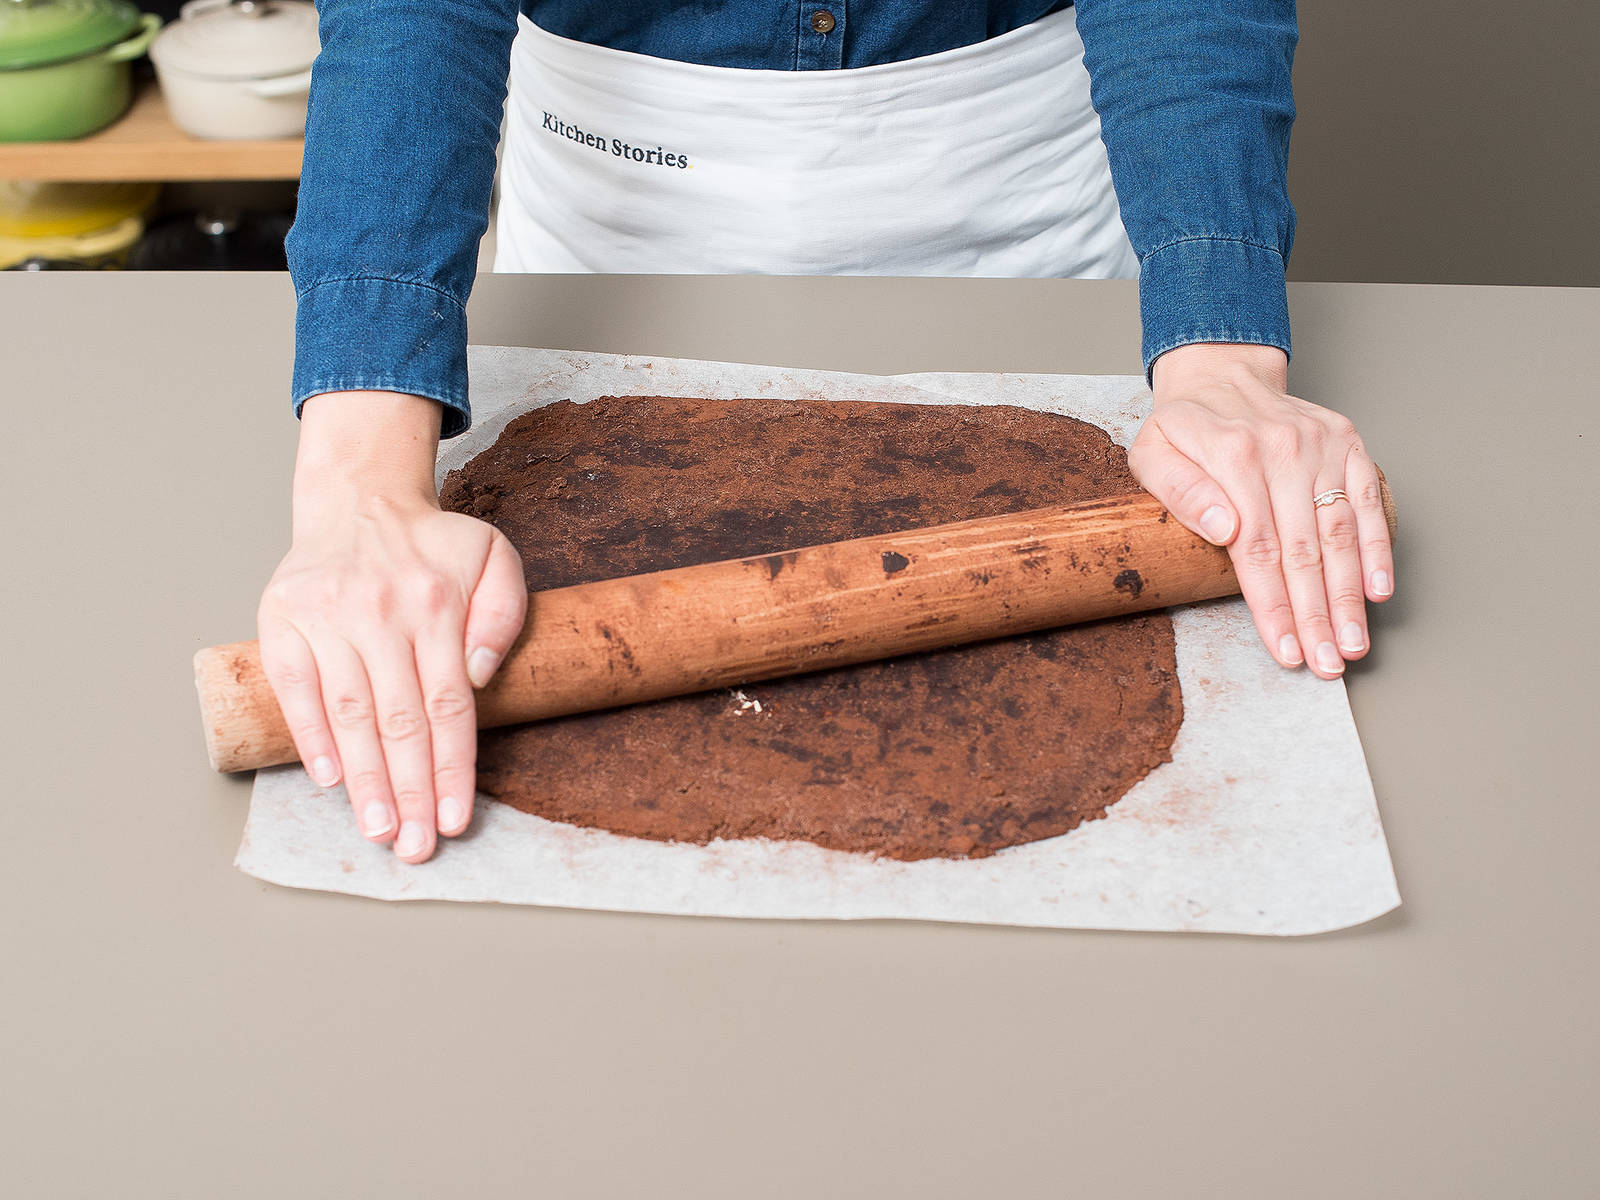 Line a springform pan with parchment paper, lightly grease with butter, and set aside. Preheat oven to 180°C/350°F. Dust a sheet of parchment paper with cocoa powder and roll out about 2/3 of the dough into a circle slightly larger than the mold. Transfer to the prepared springform and press dough to fit, creating a 2 cm/0.75 in. high edge on the sides.